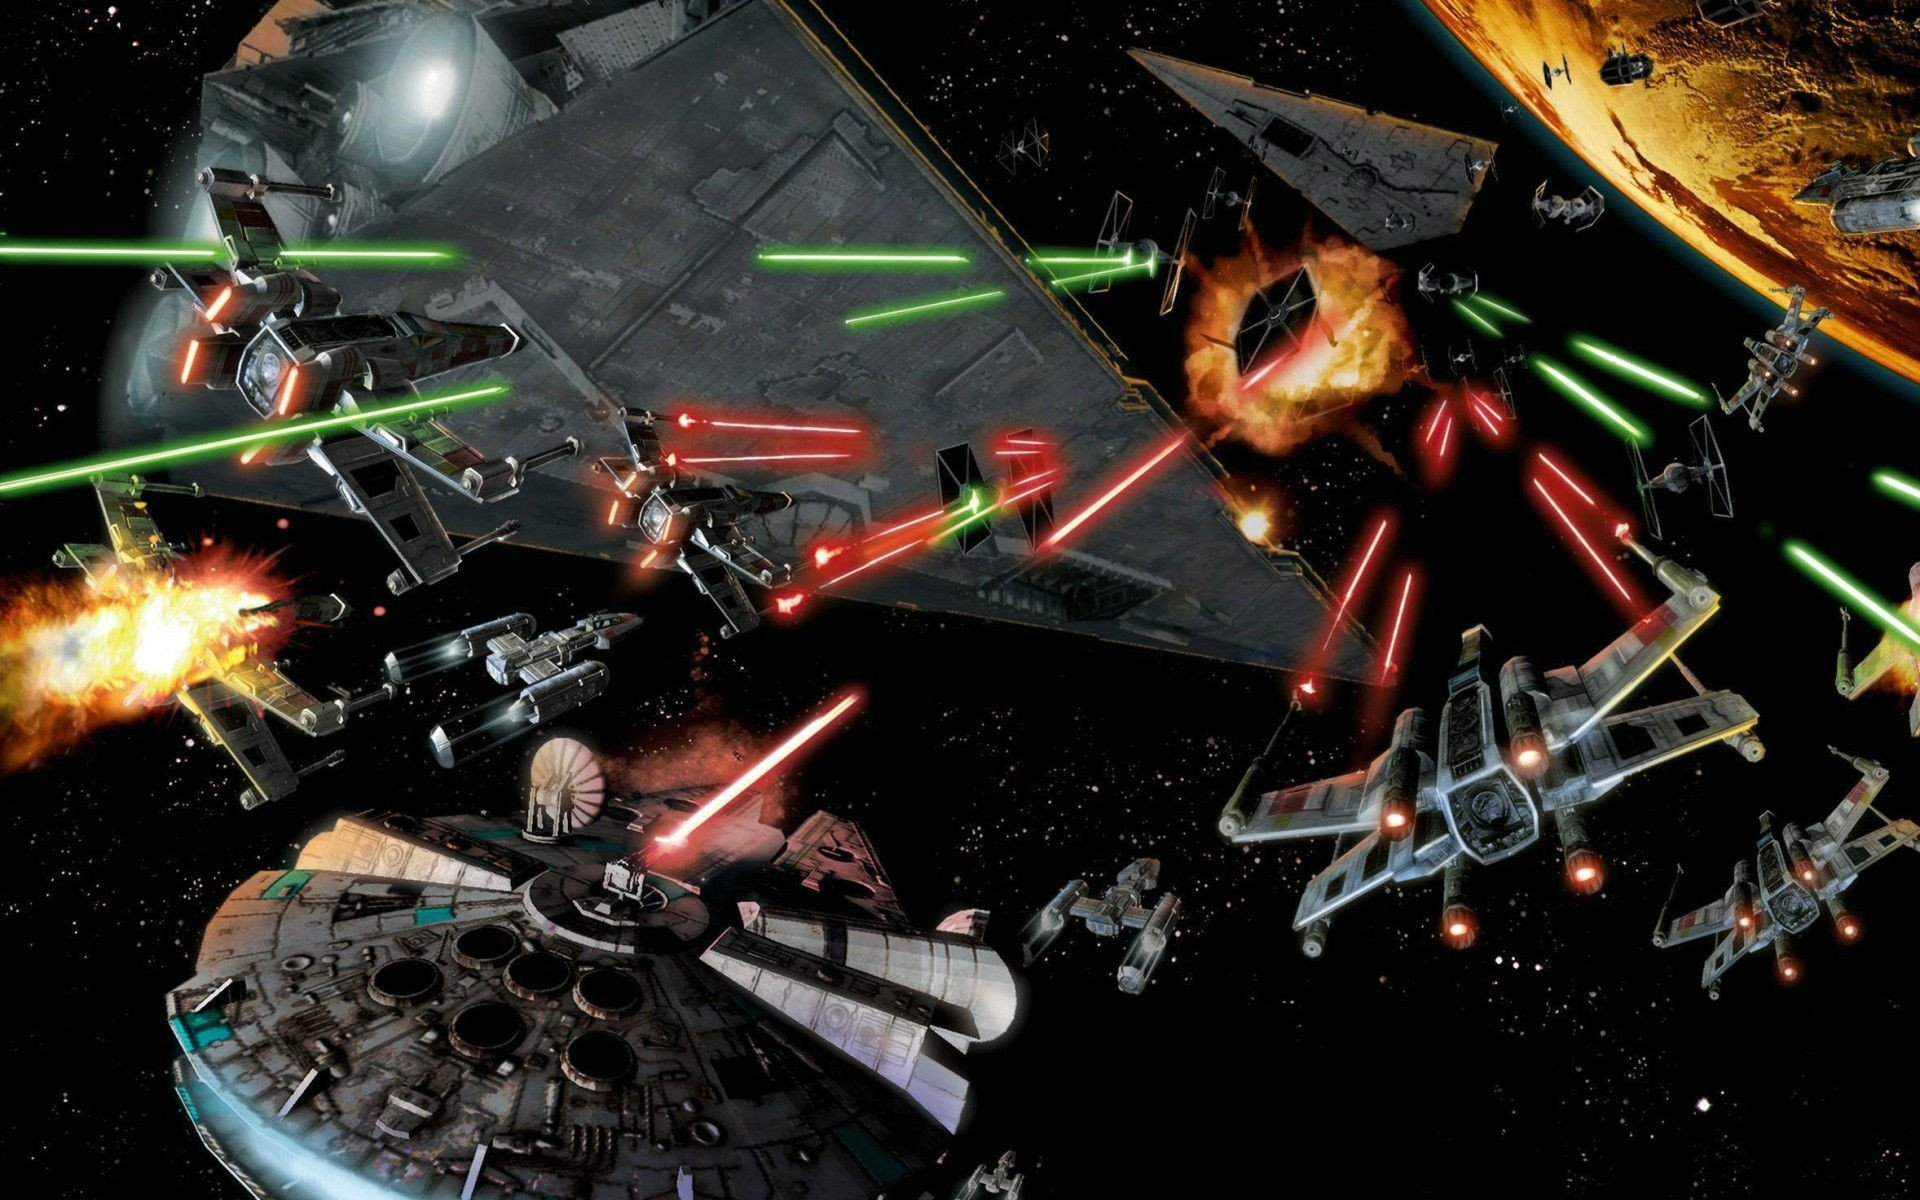 Star Wars Space Battle Wallpaper 61 images 1920x1200